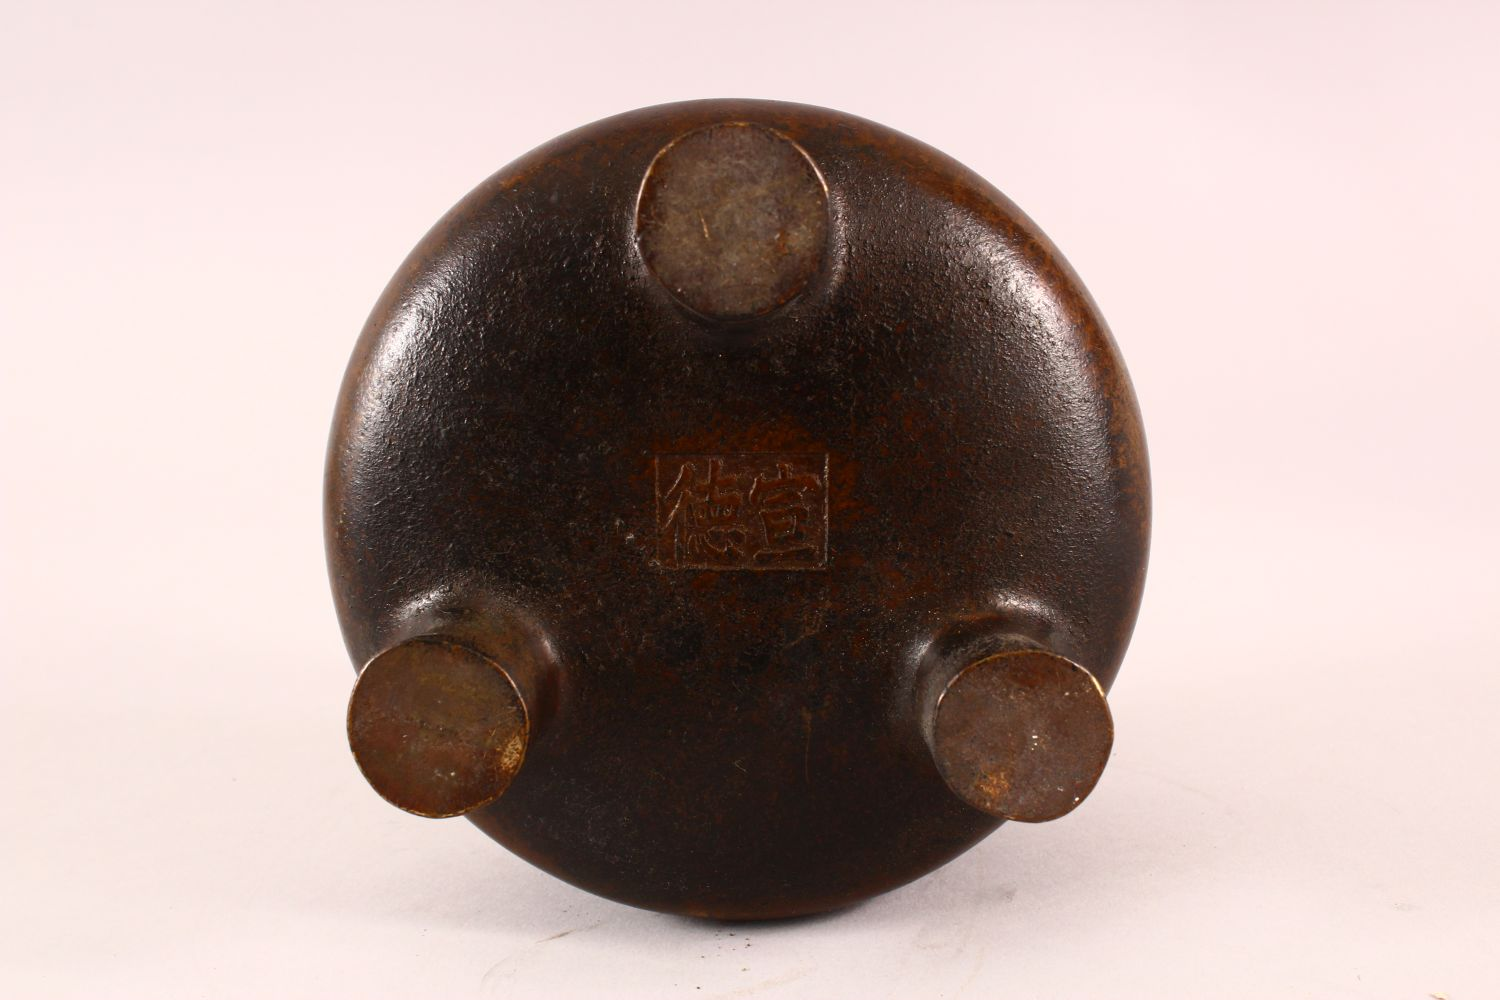 A CHINESE XUANDE STYLE BRONZE TRIPOD CENSER, underside with a mark, 16cm - Image 6 of 7